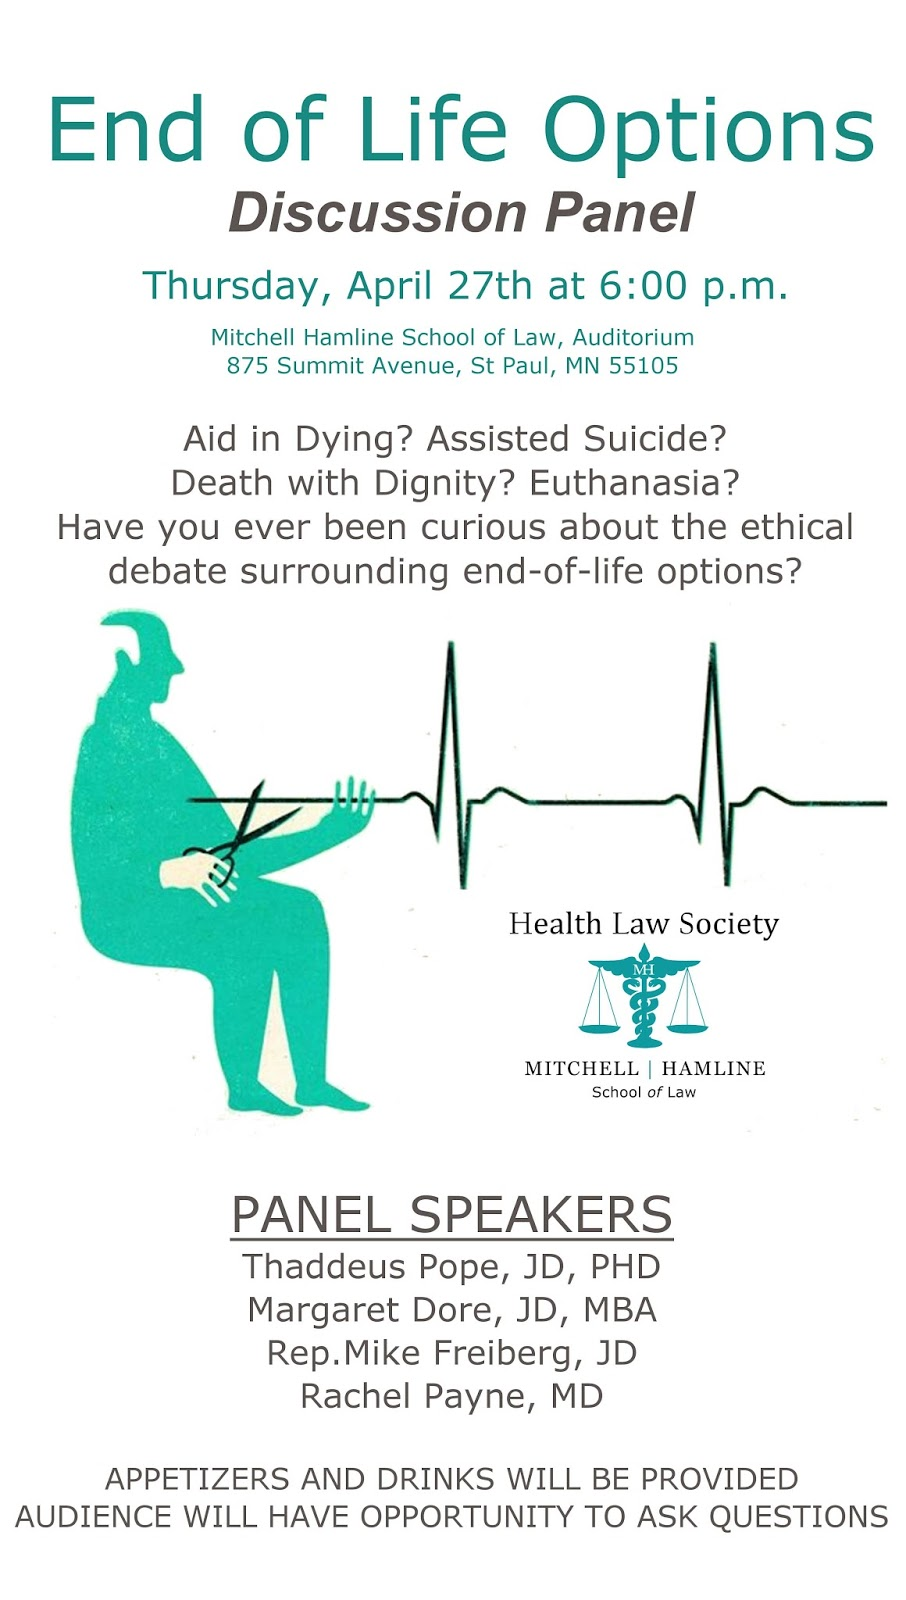 Minnesota End of Life Options Discussion Panel | Bioethics.net